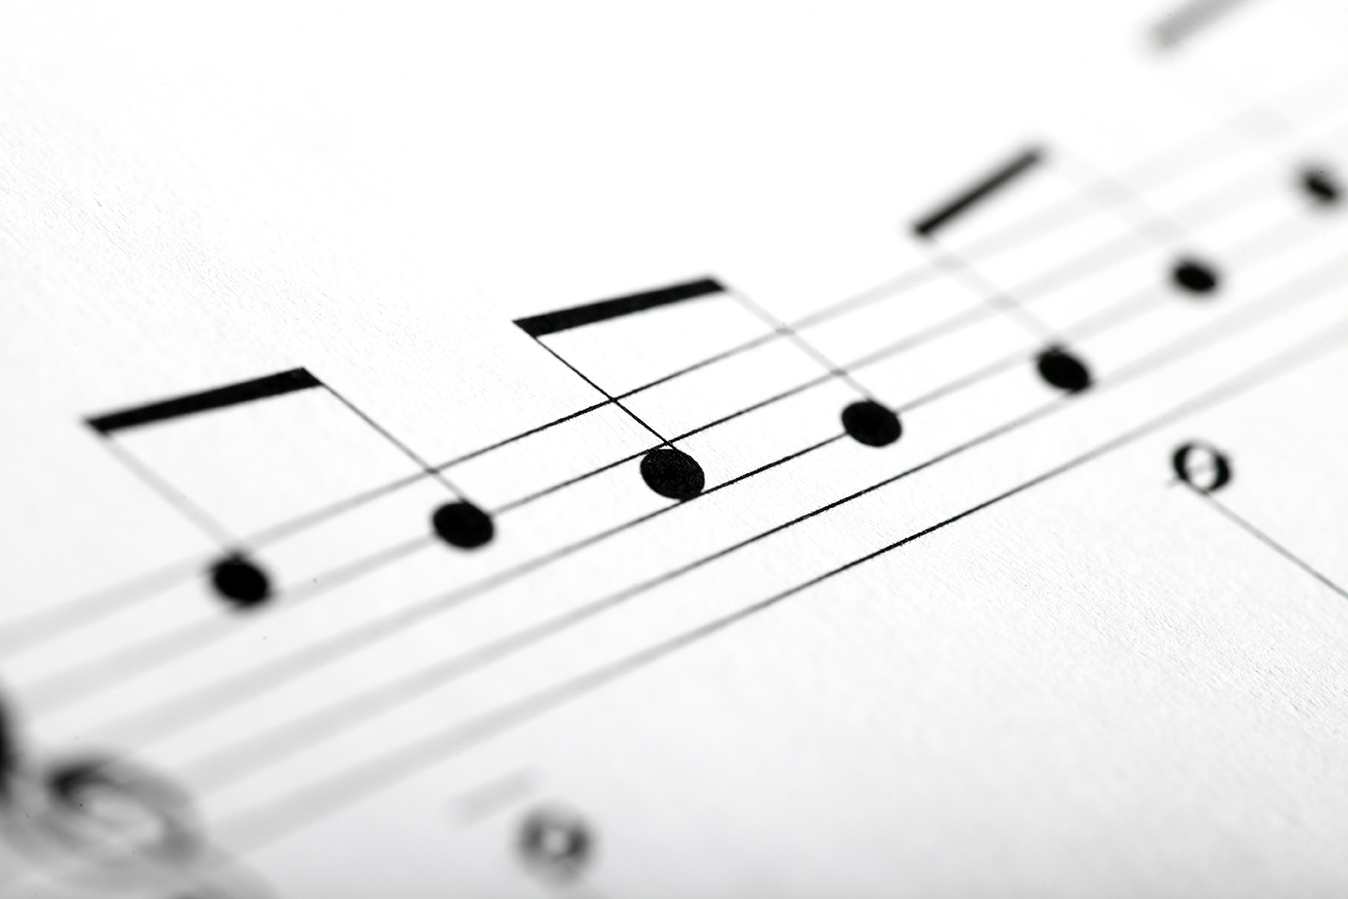 Detail of some musical notes on a music sheet